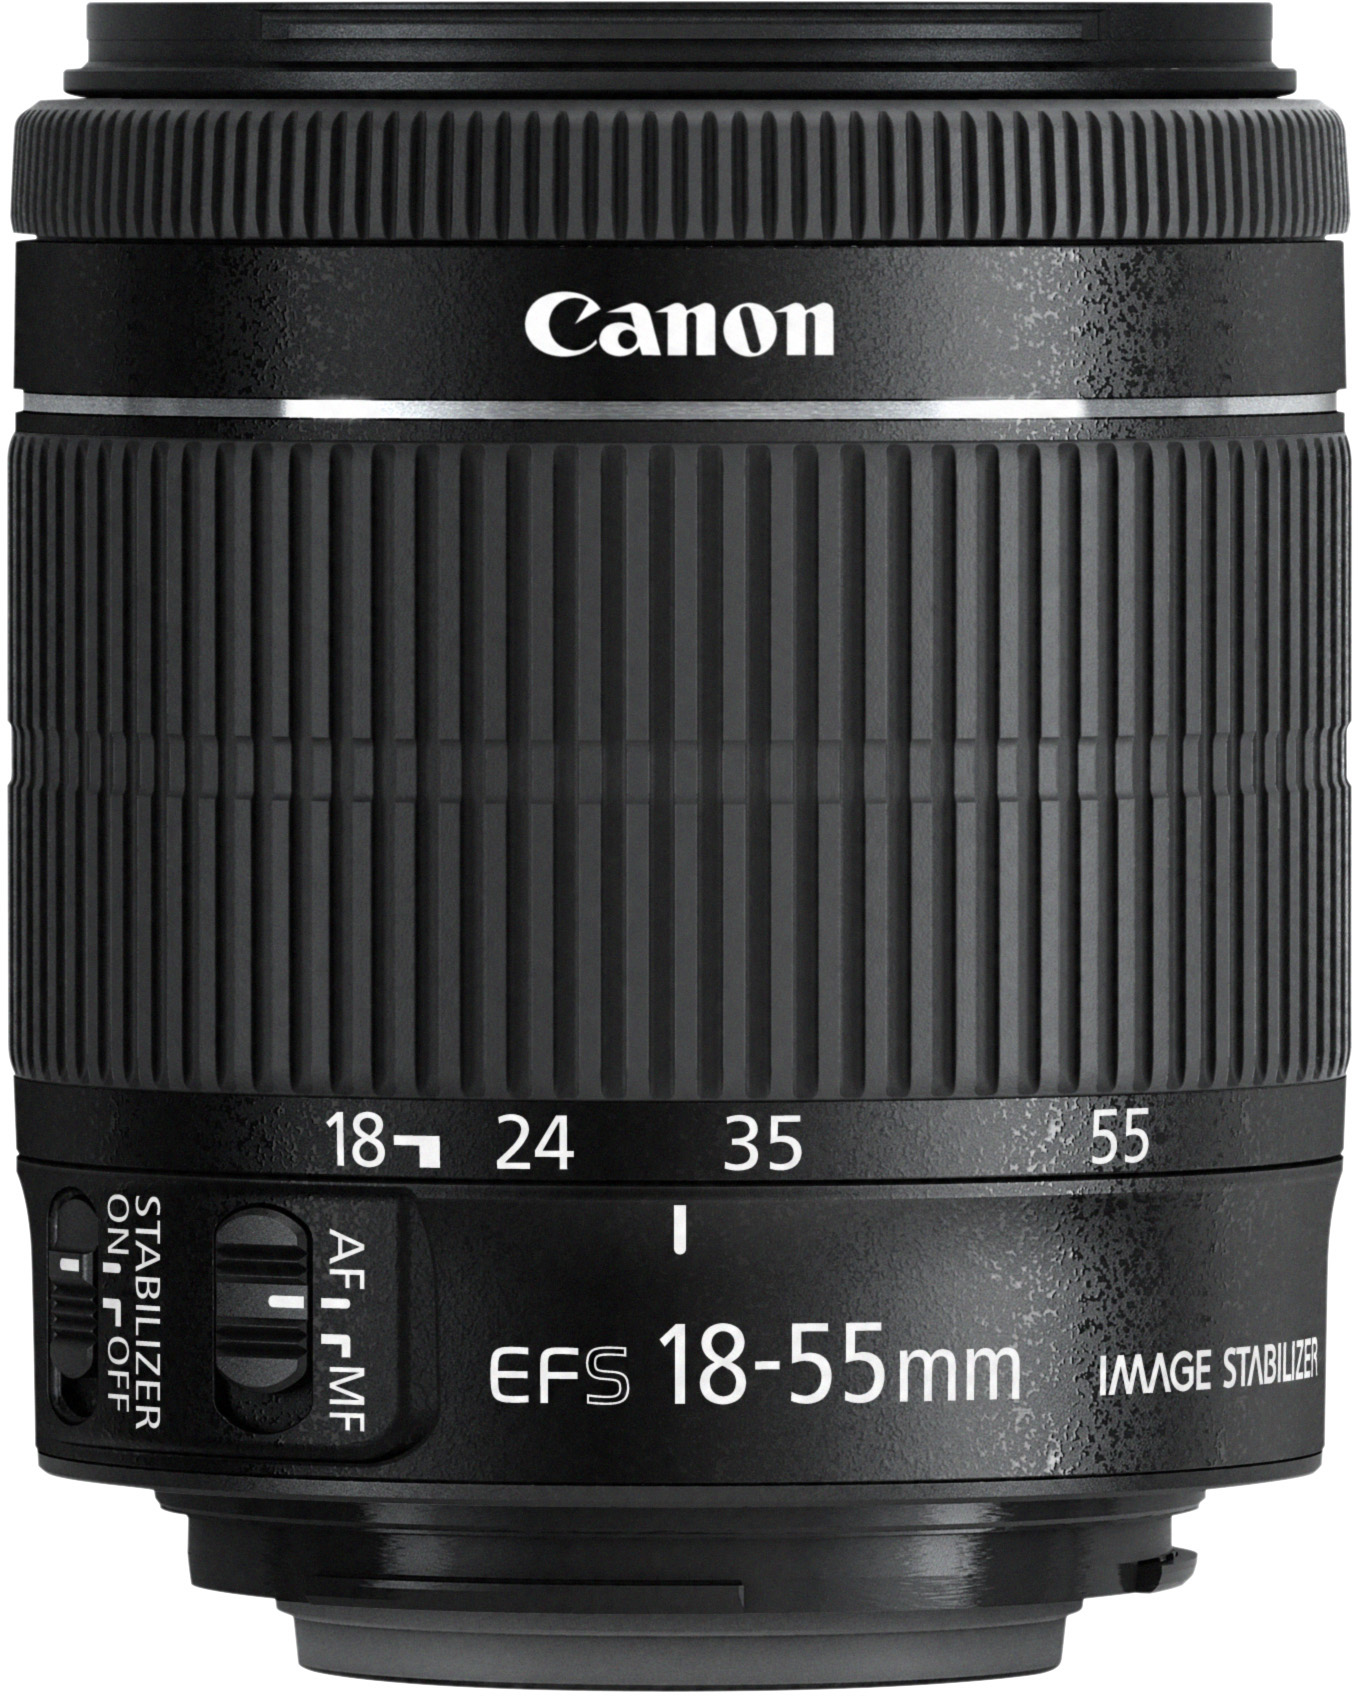 Canon EF-S 18-55mm f/3.5-5.6 IS STM Zoom Lens